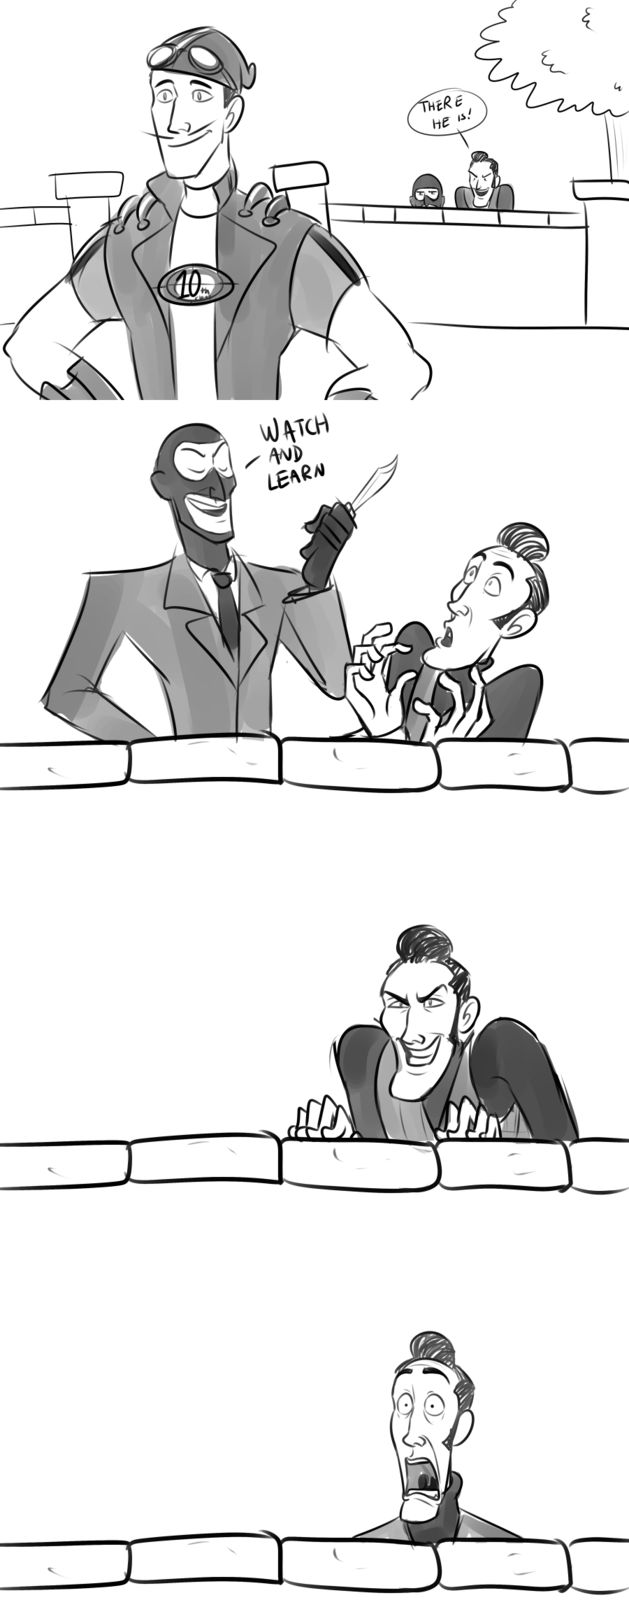 ...so THATS where I heard his name from not Lazytown but Spy was his name I was wondering where I heard of this cartoon...Yea I remember watching something to do with Spy as a kid and of course me being a kid I didn't know what the heck he was doing but I think the show was canceled soon a after it was on air